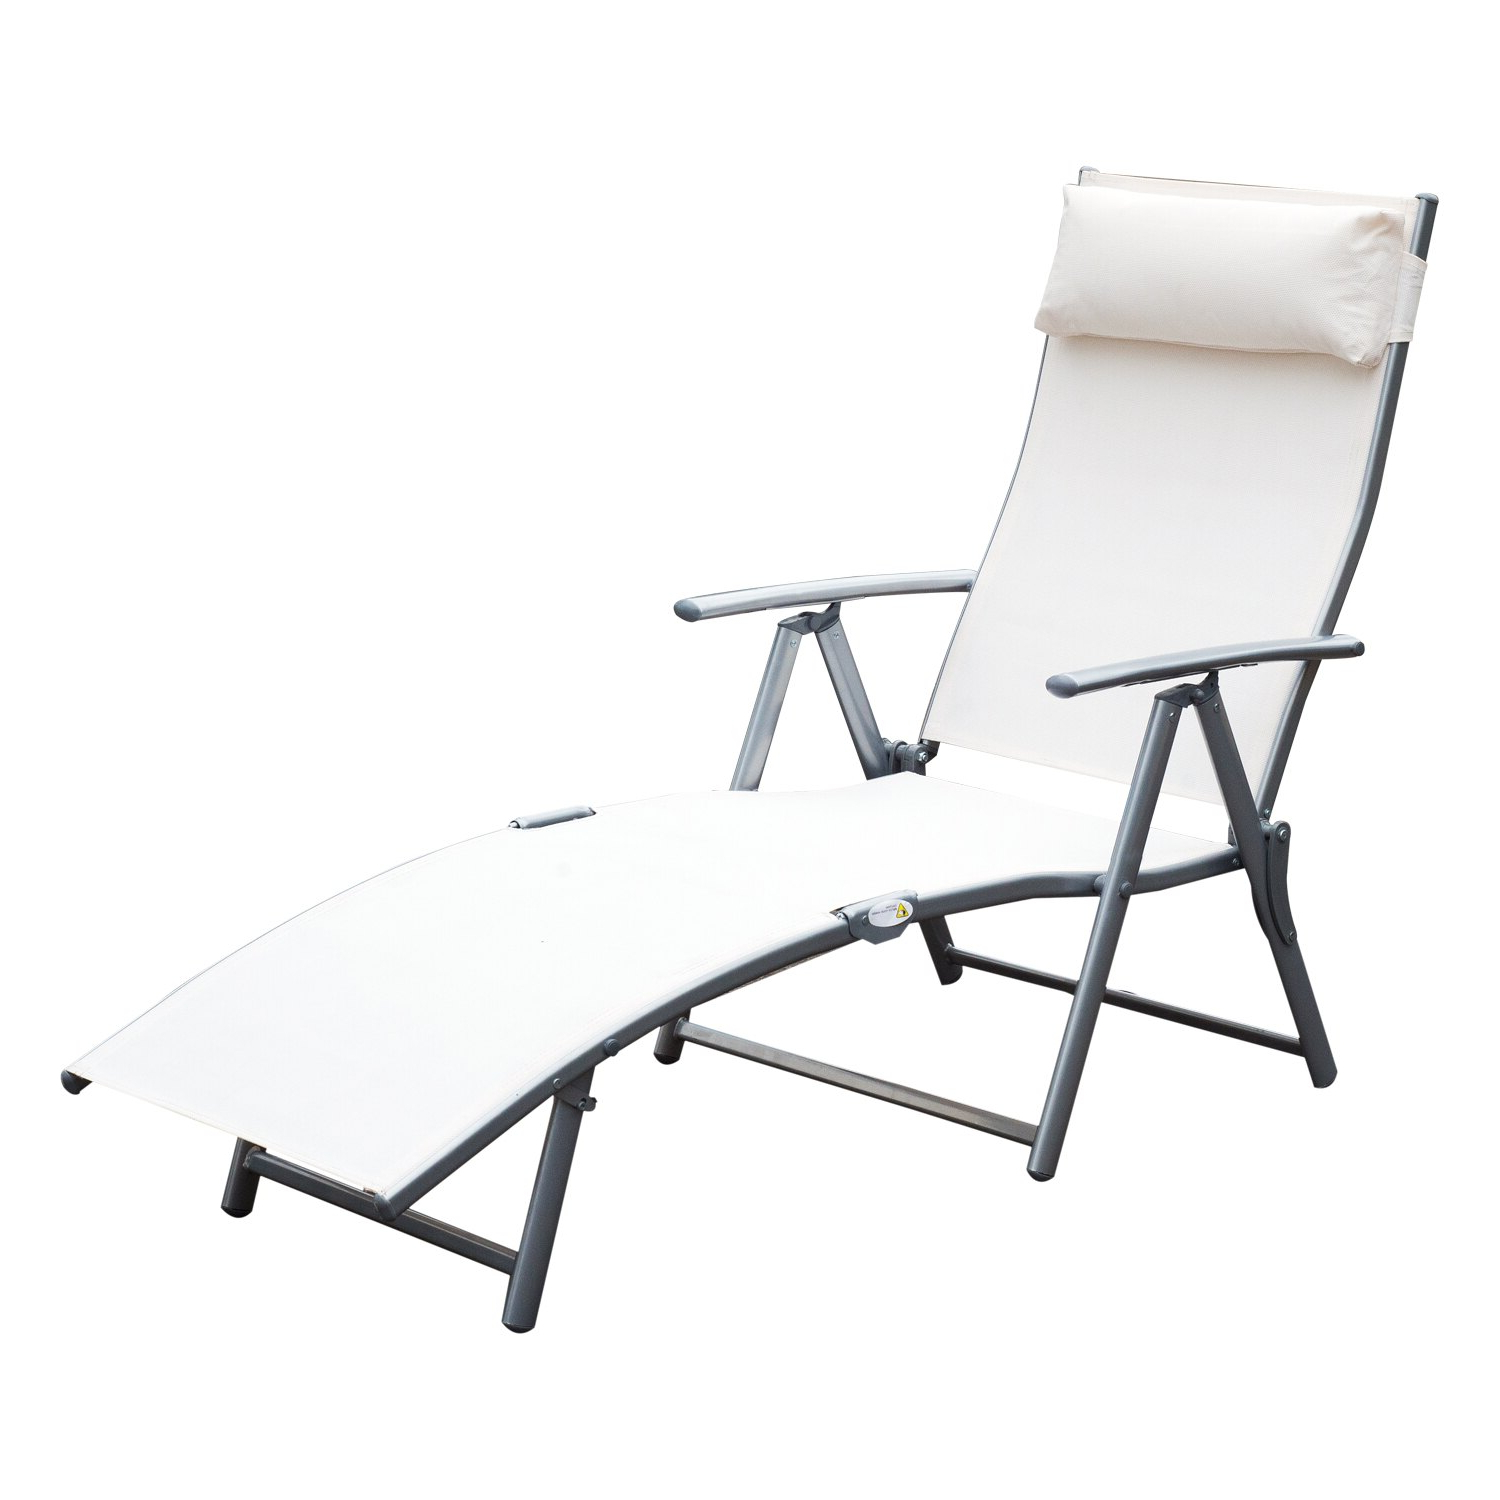 Reclining Sling Chaise Lounges Pertaining To Recent Outsunny Sling Fabric Patio Reclining Chaise Lounge Chair Folding 5 Position Adjustable Outdoor Deck With Cushion – Cream White (Gallery 7 of 25)